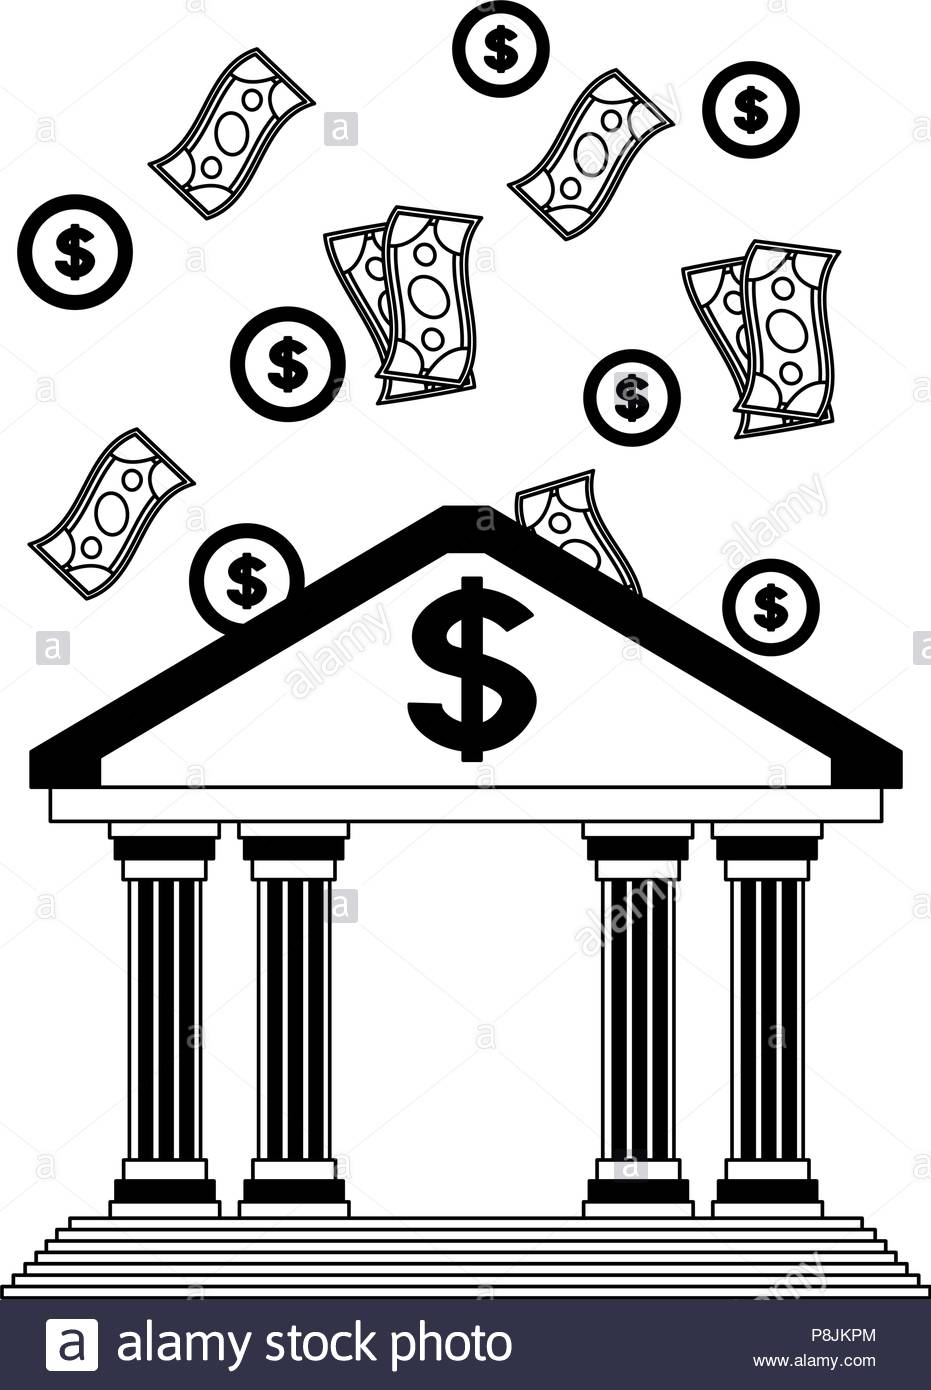 Money falling to bank building black and white Stock Vector Art.